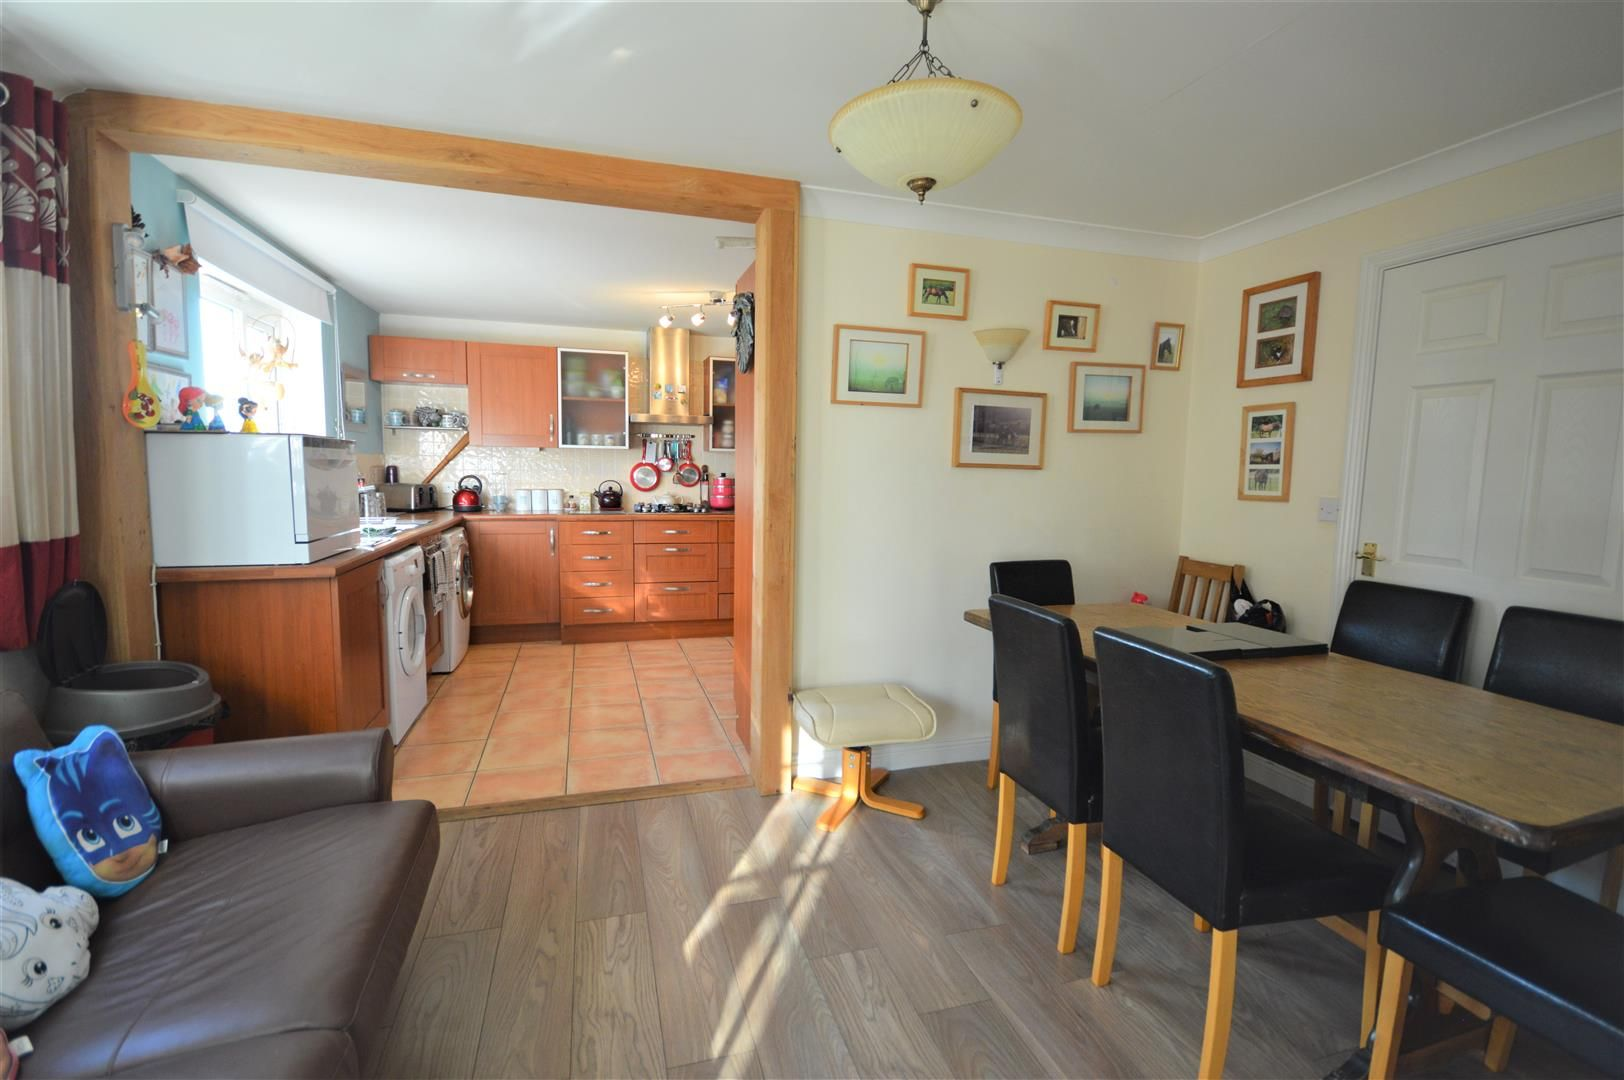 4 bed semi-detached for sale in Leominster 4